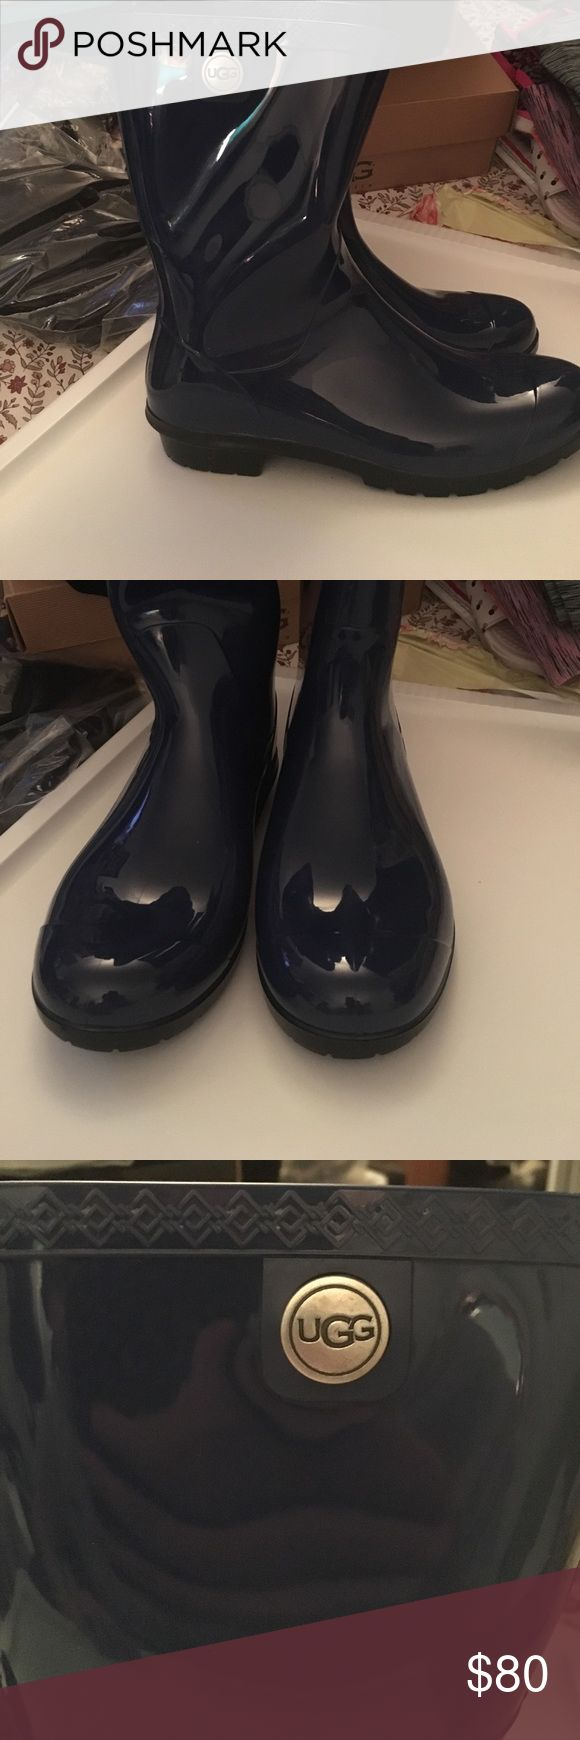 Brand new indigo blue short ugg rain boots Brand new, short indigo blue rain boots. Has ugg emblem on outer side of boot and real lamb fur as the inside sole of the boot UGG Shoes Winter & Rain Boots